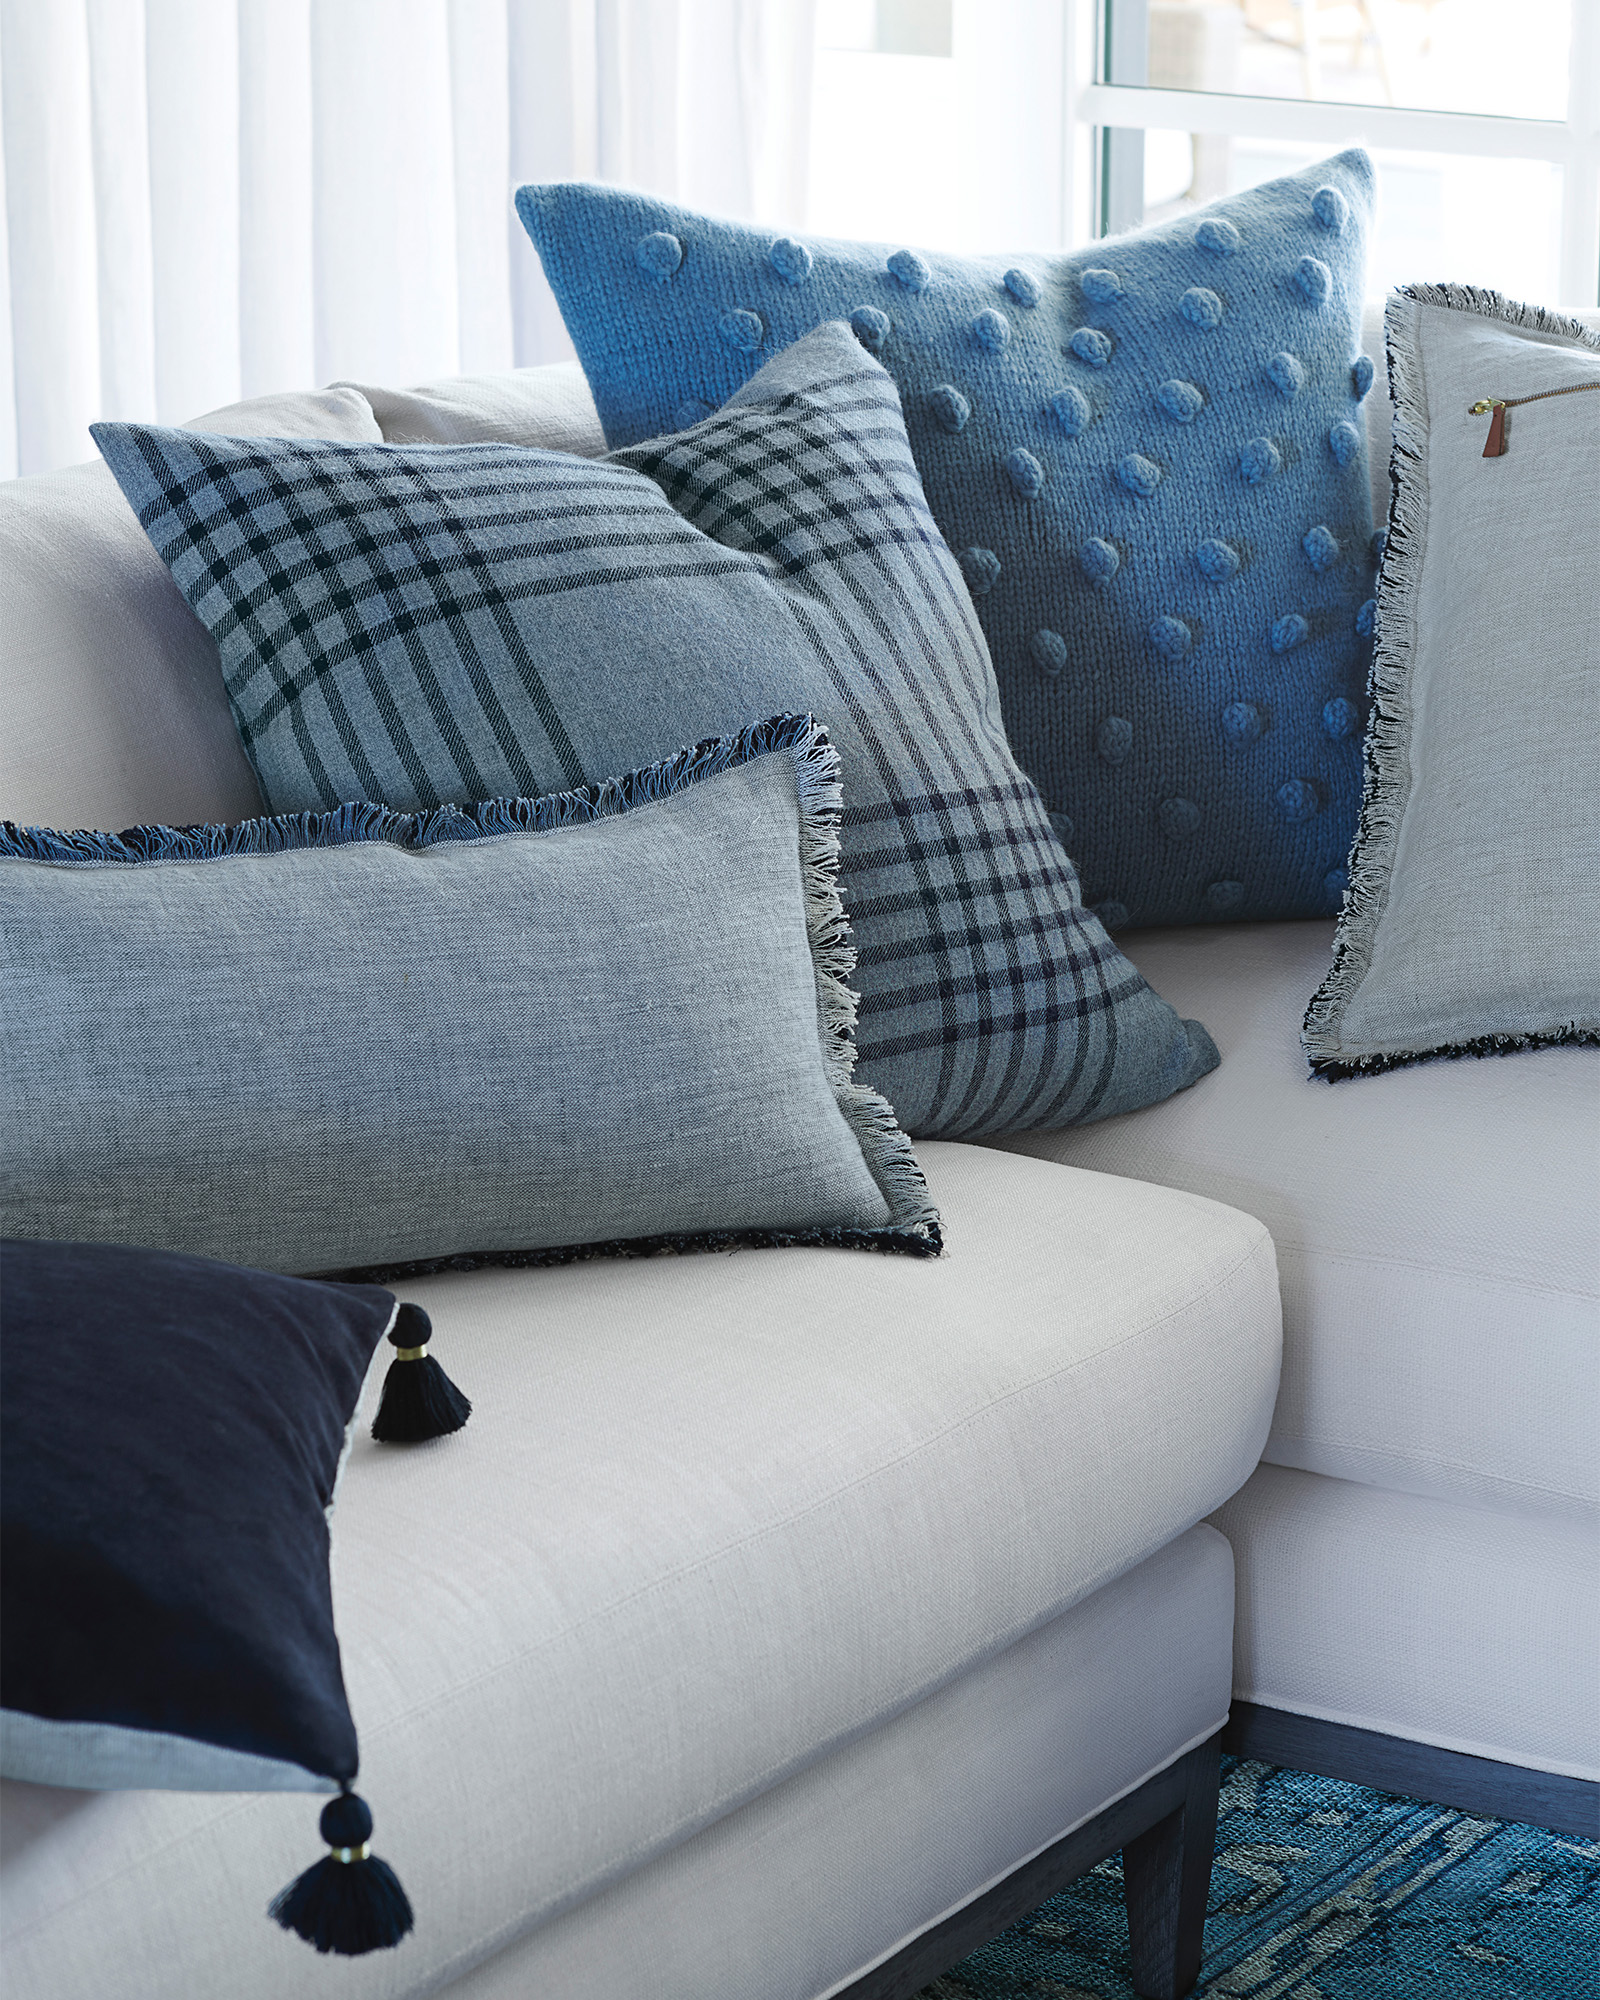 Blue pillows on a sofa (Blakely Plaid Pillow Cover) - Serena & Lily